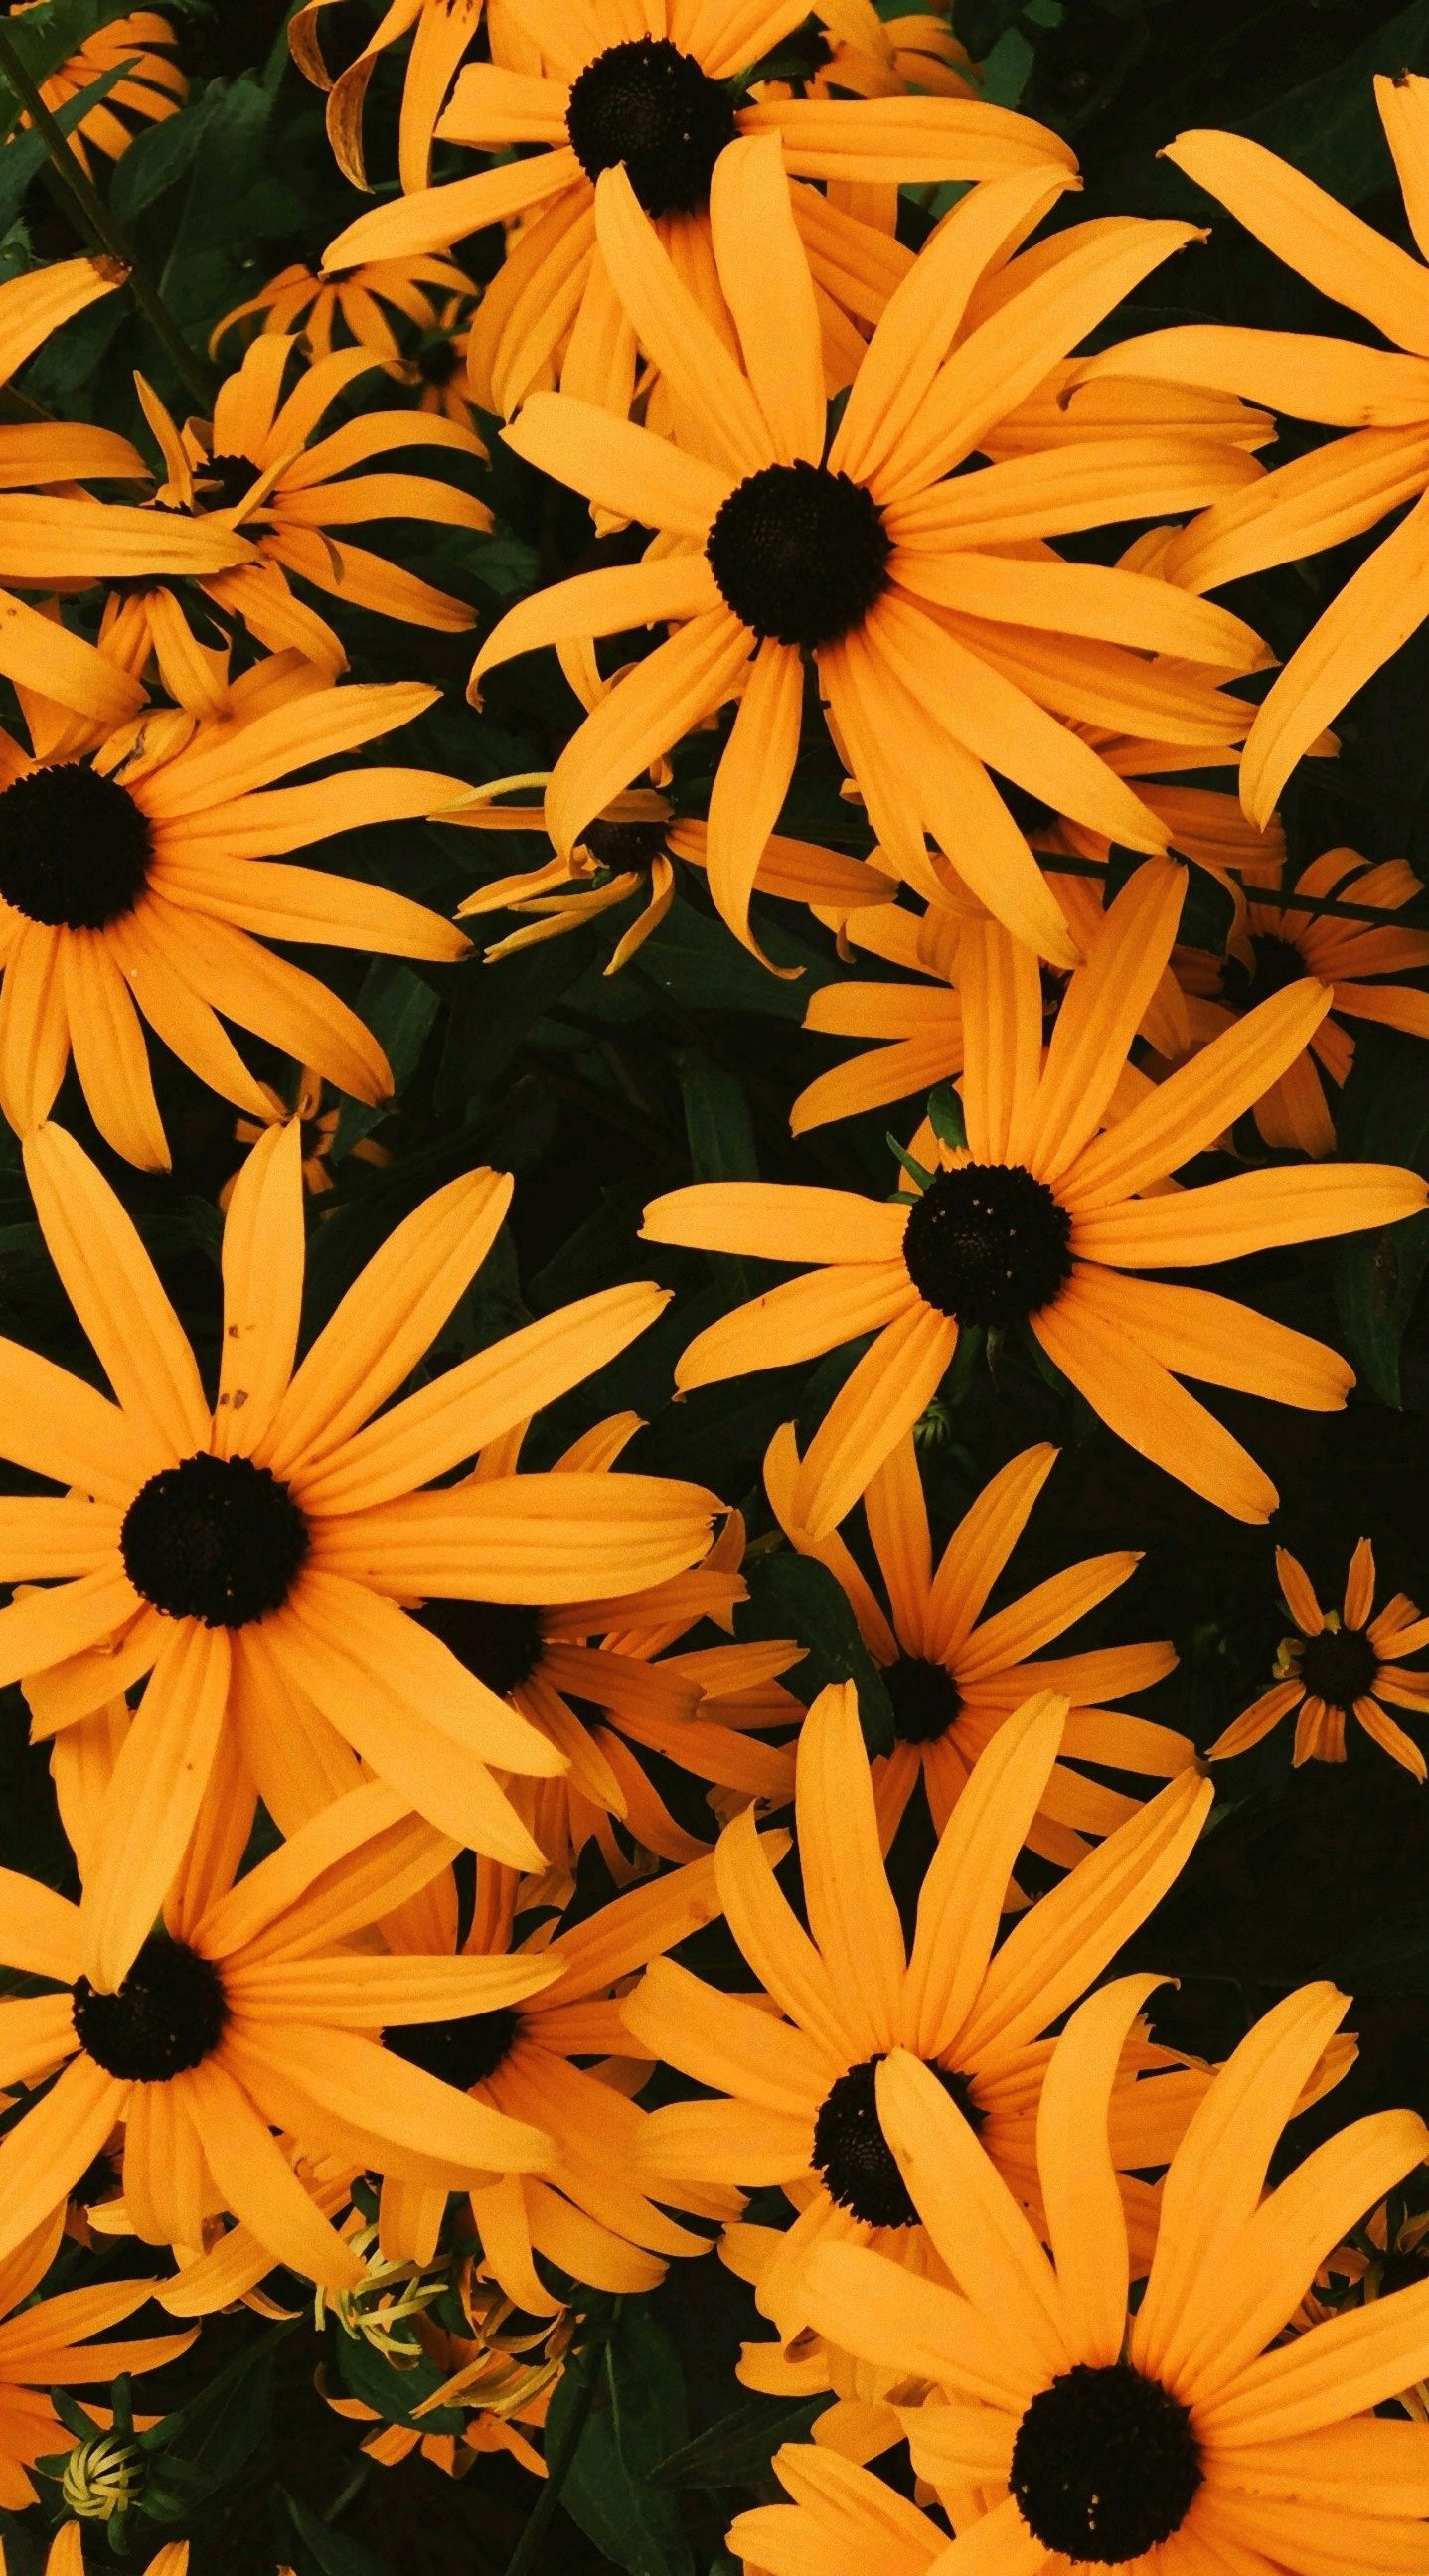 Pin By Paige Jewell On Phone Backgrounds Fall Wallpaper Tumblr Sunflower Wallpaper Fall Wallpaper